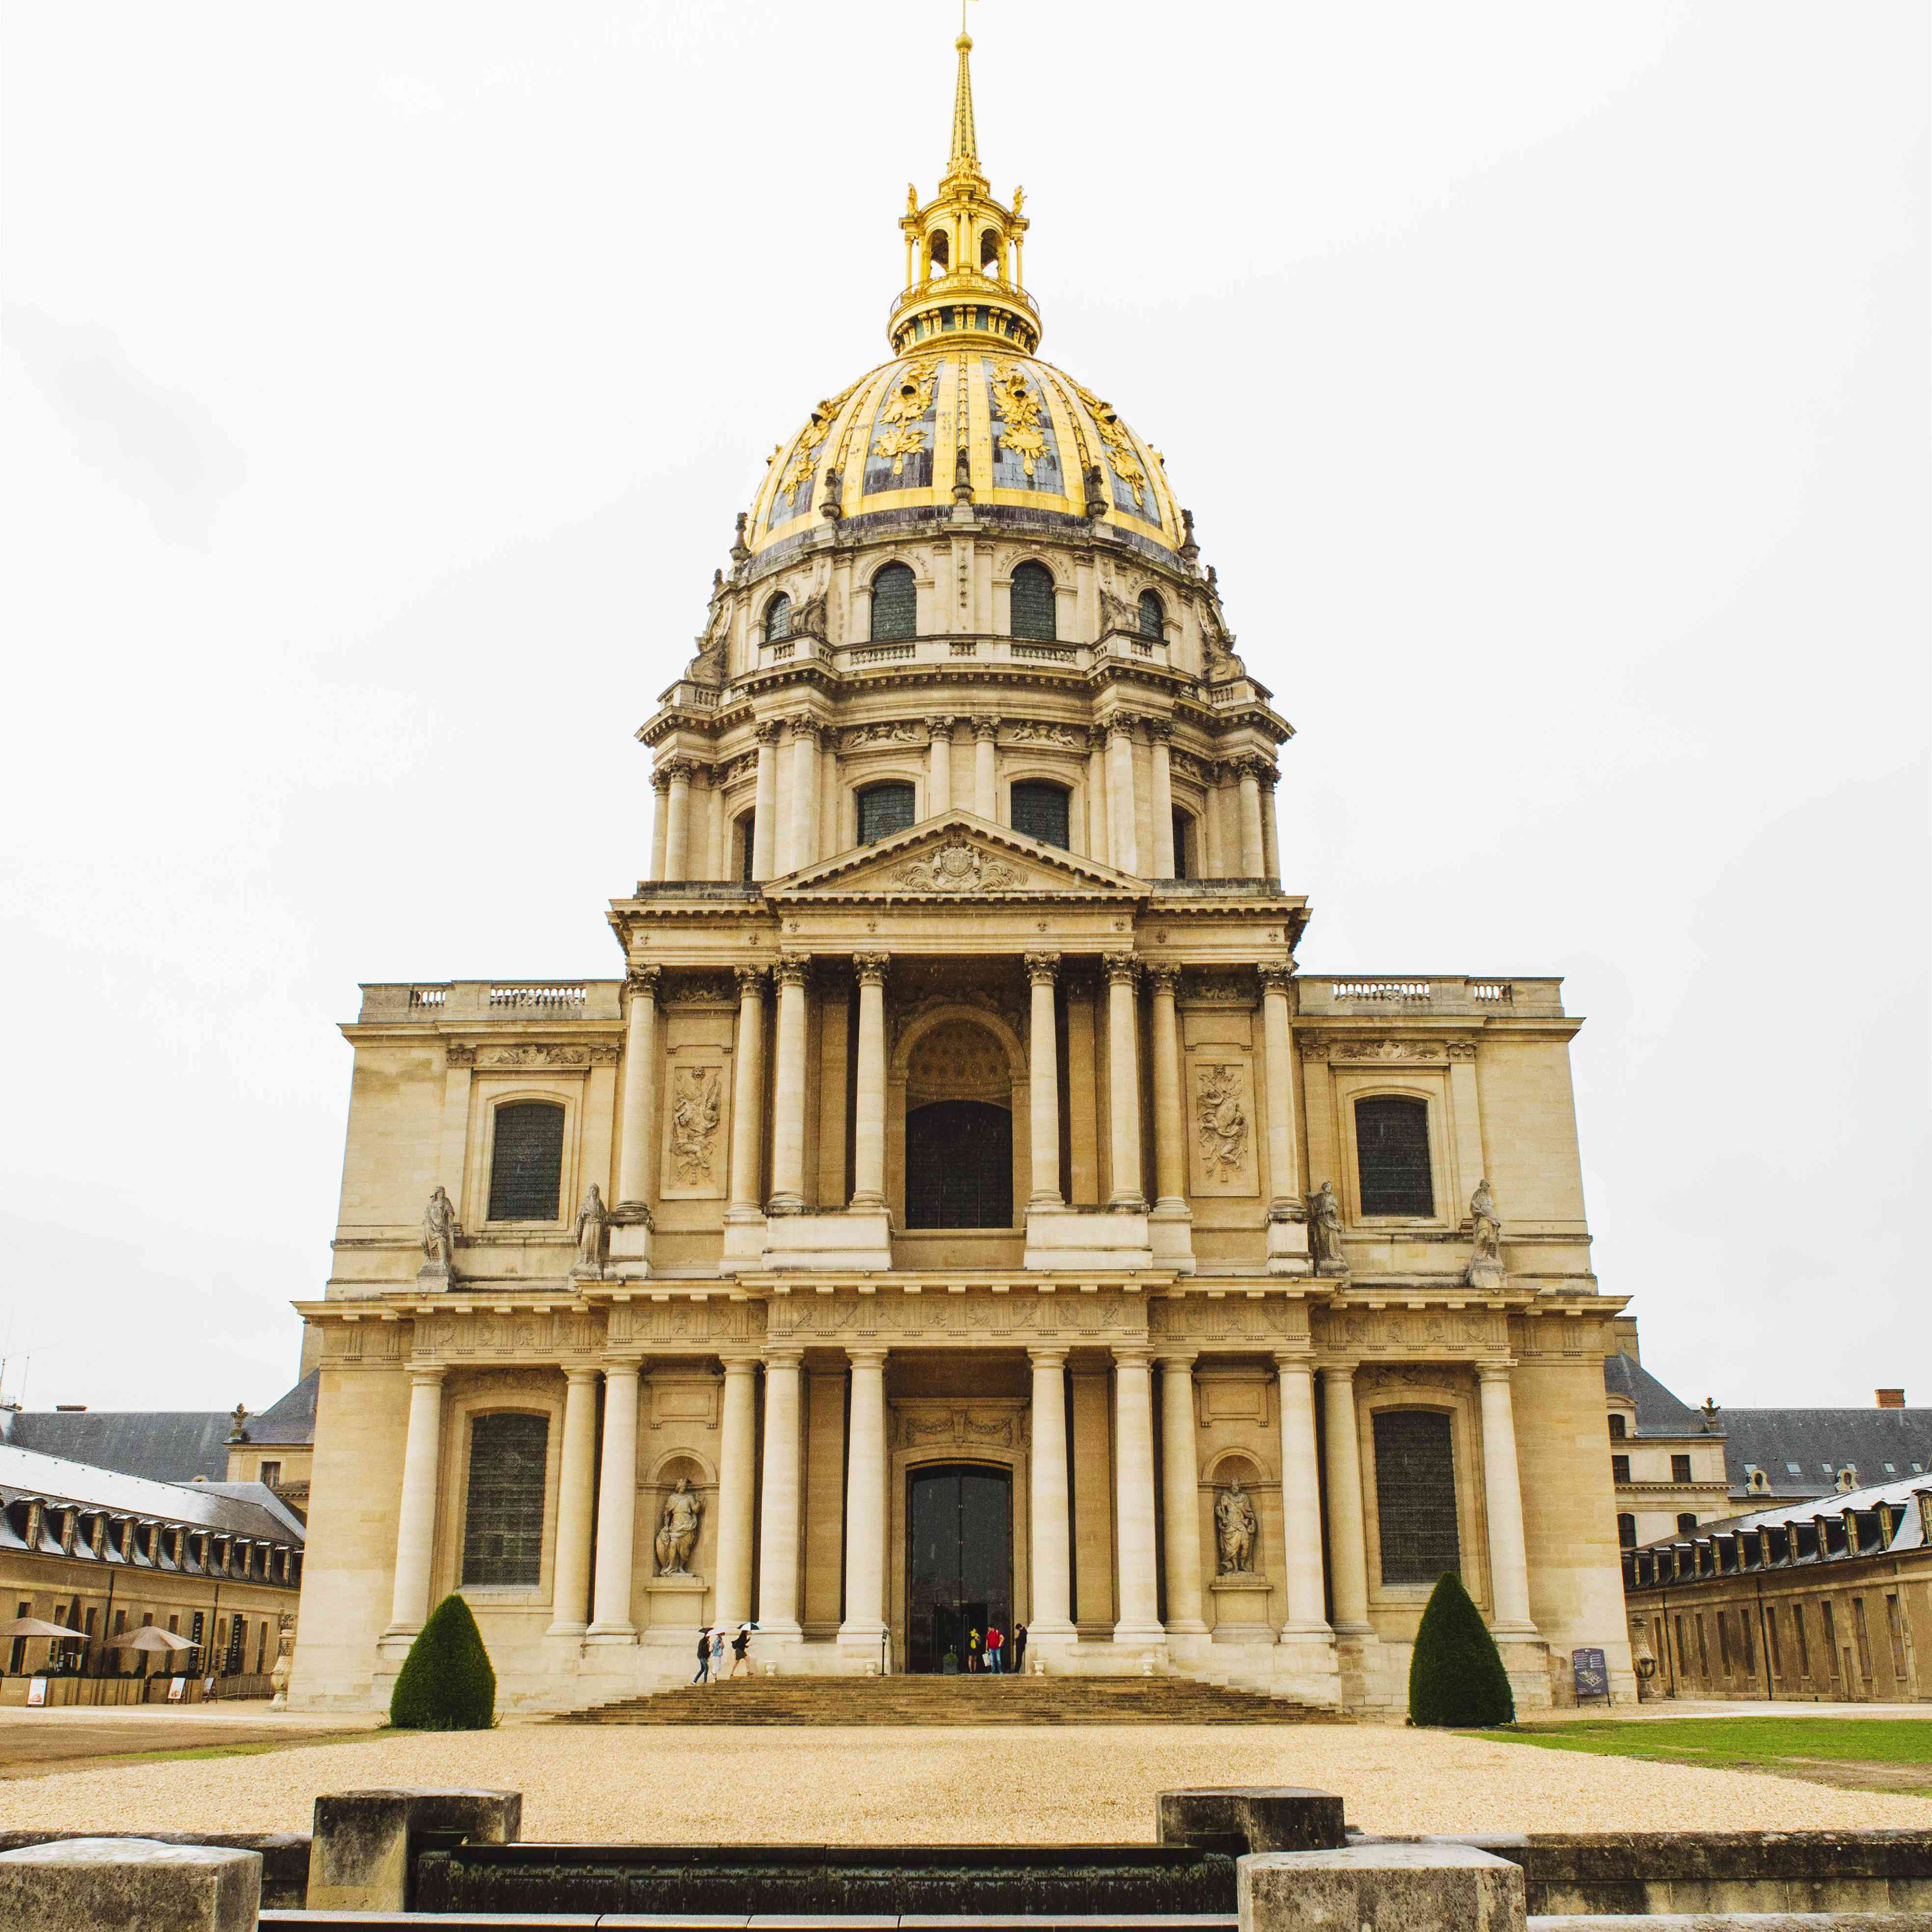 Exterior of the Les Invalides